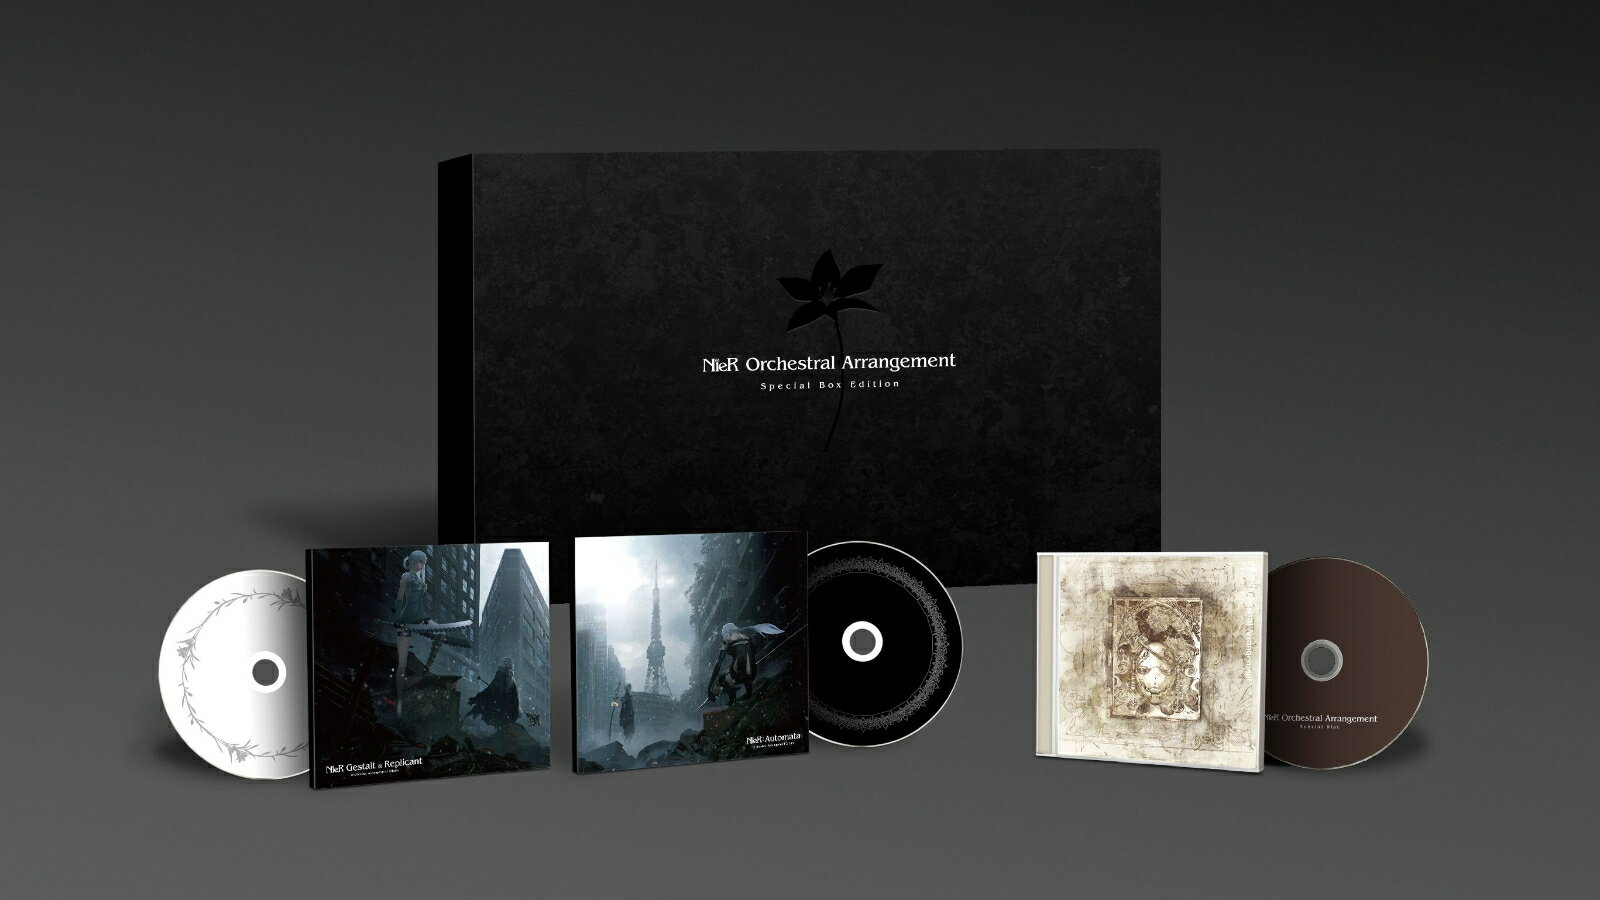 NieR Orchestral Arrangement Special Box Edition (完全生産限定盤) [ (ゲーム・ミュージック) ]